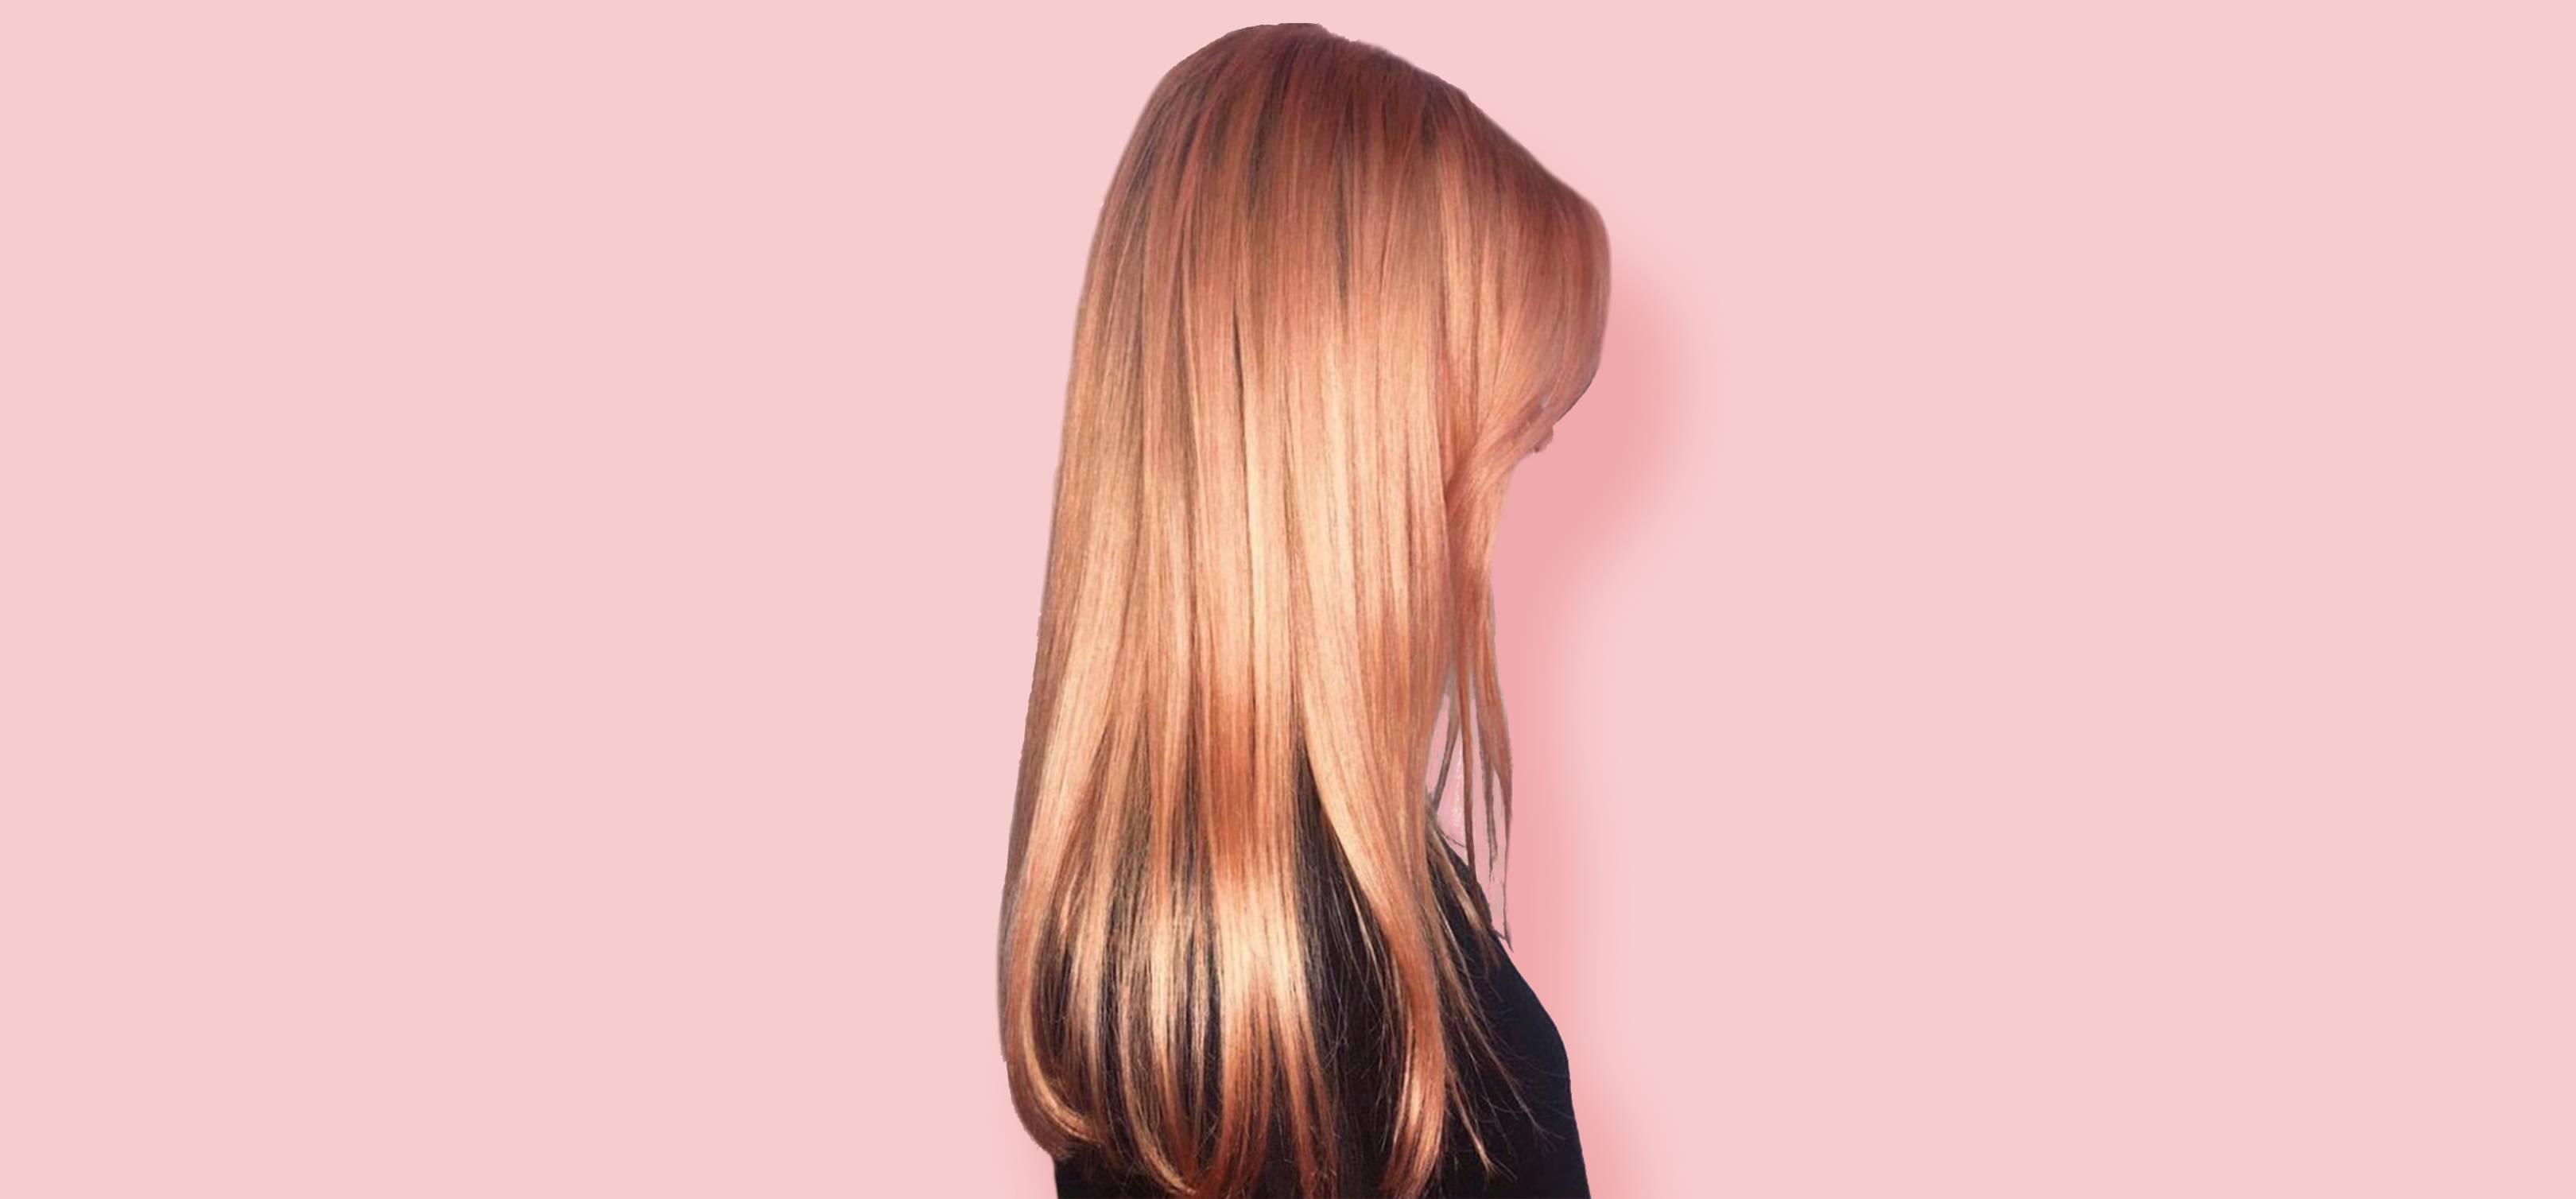 Rose Gold Hair Colour: The Trend For The Perfect Pink Hair